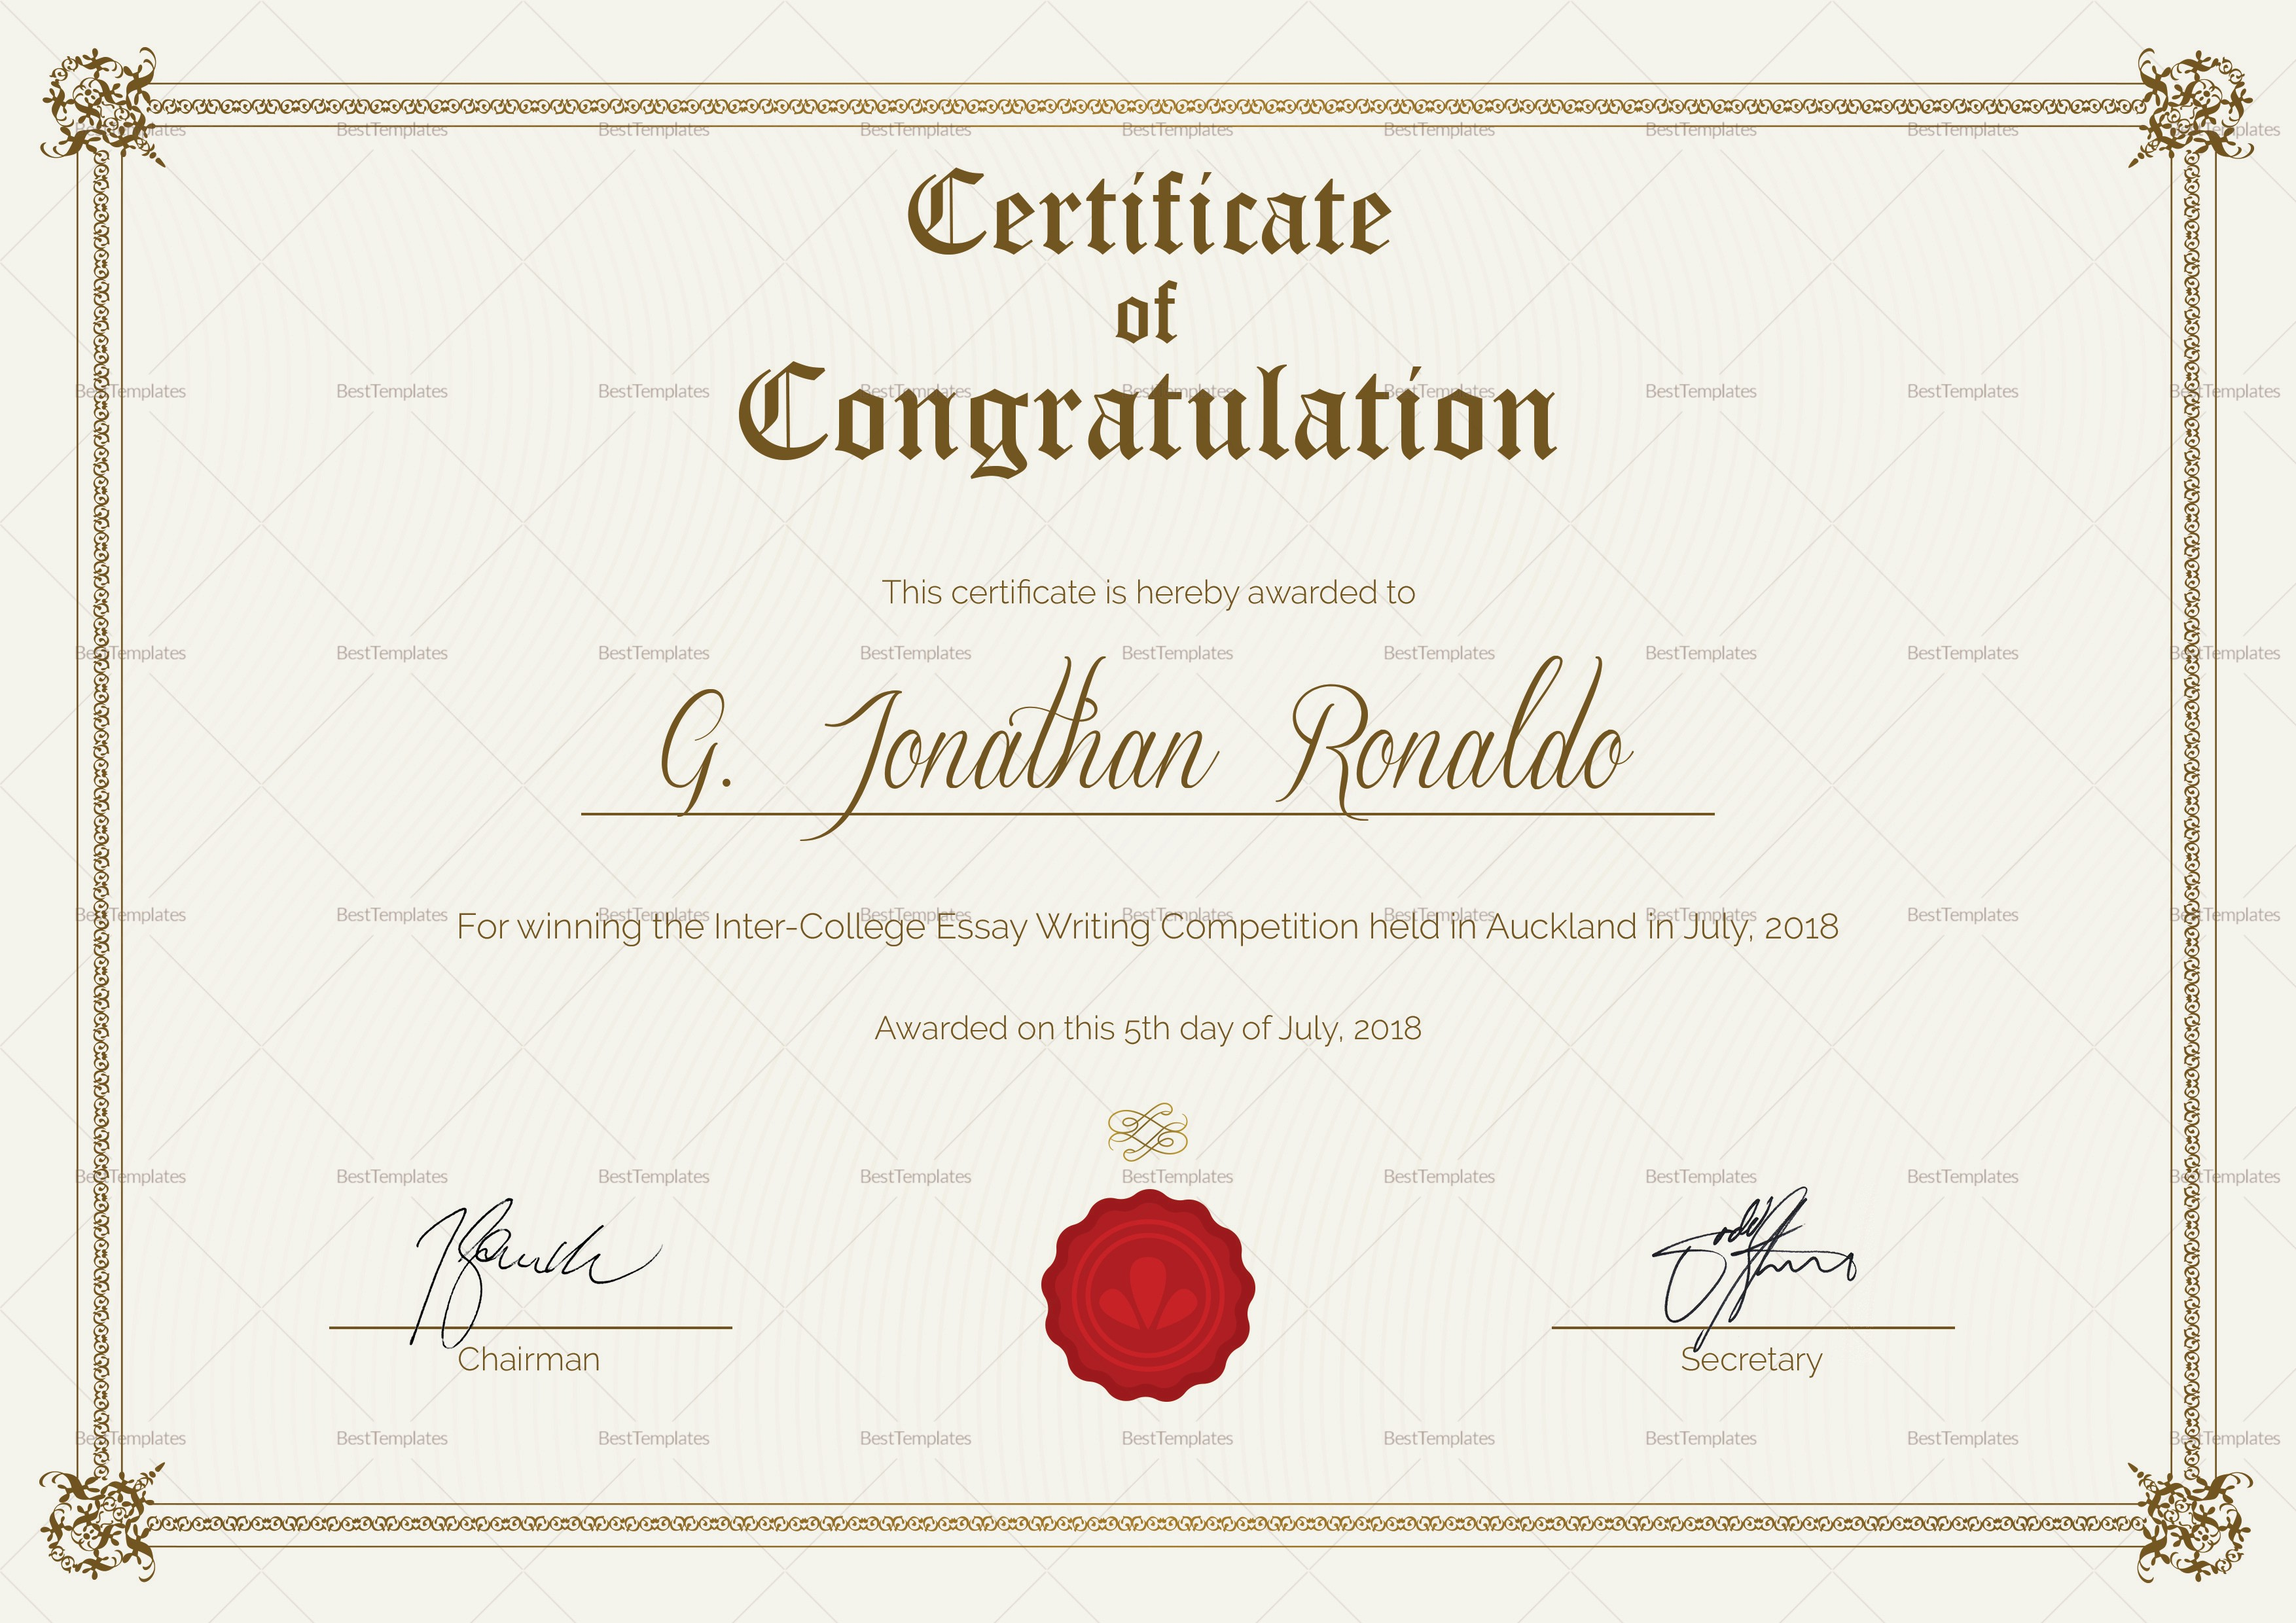 Congratulations Certificate Template Microsoft Word Unique General format Congratulations Certificate Design Template